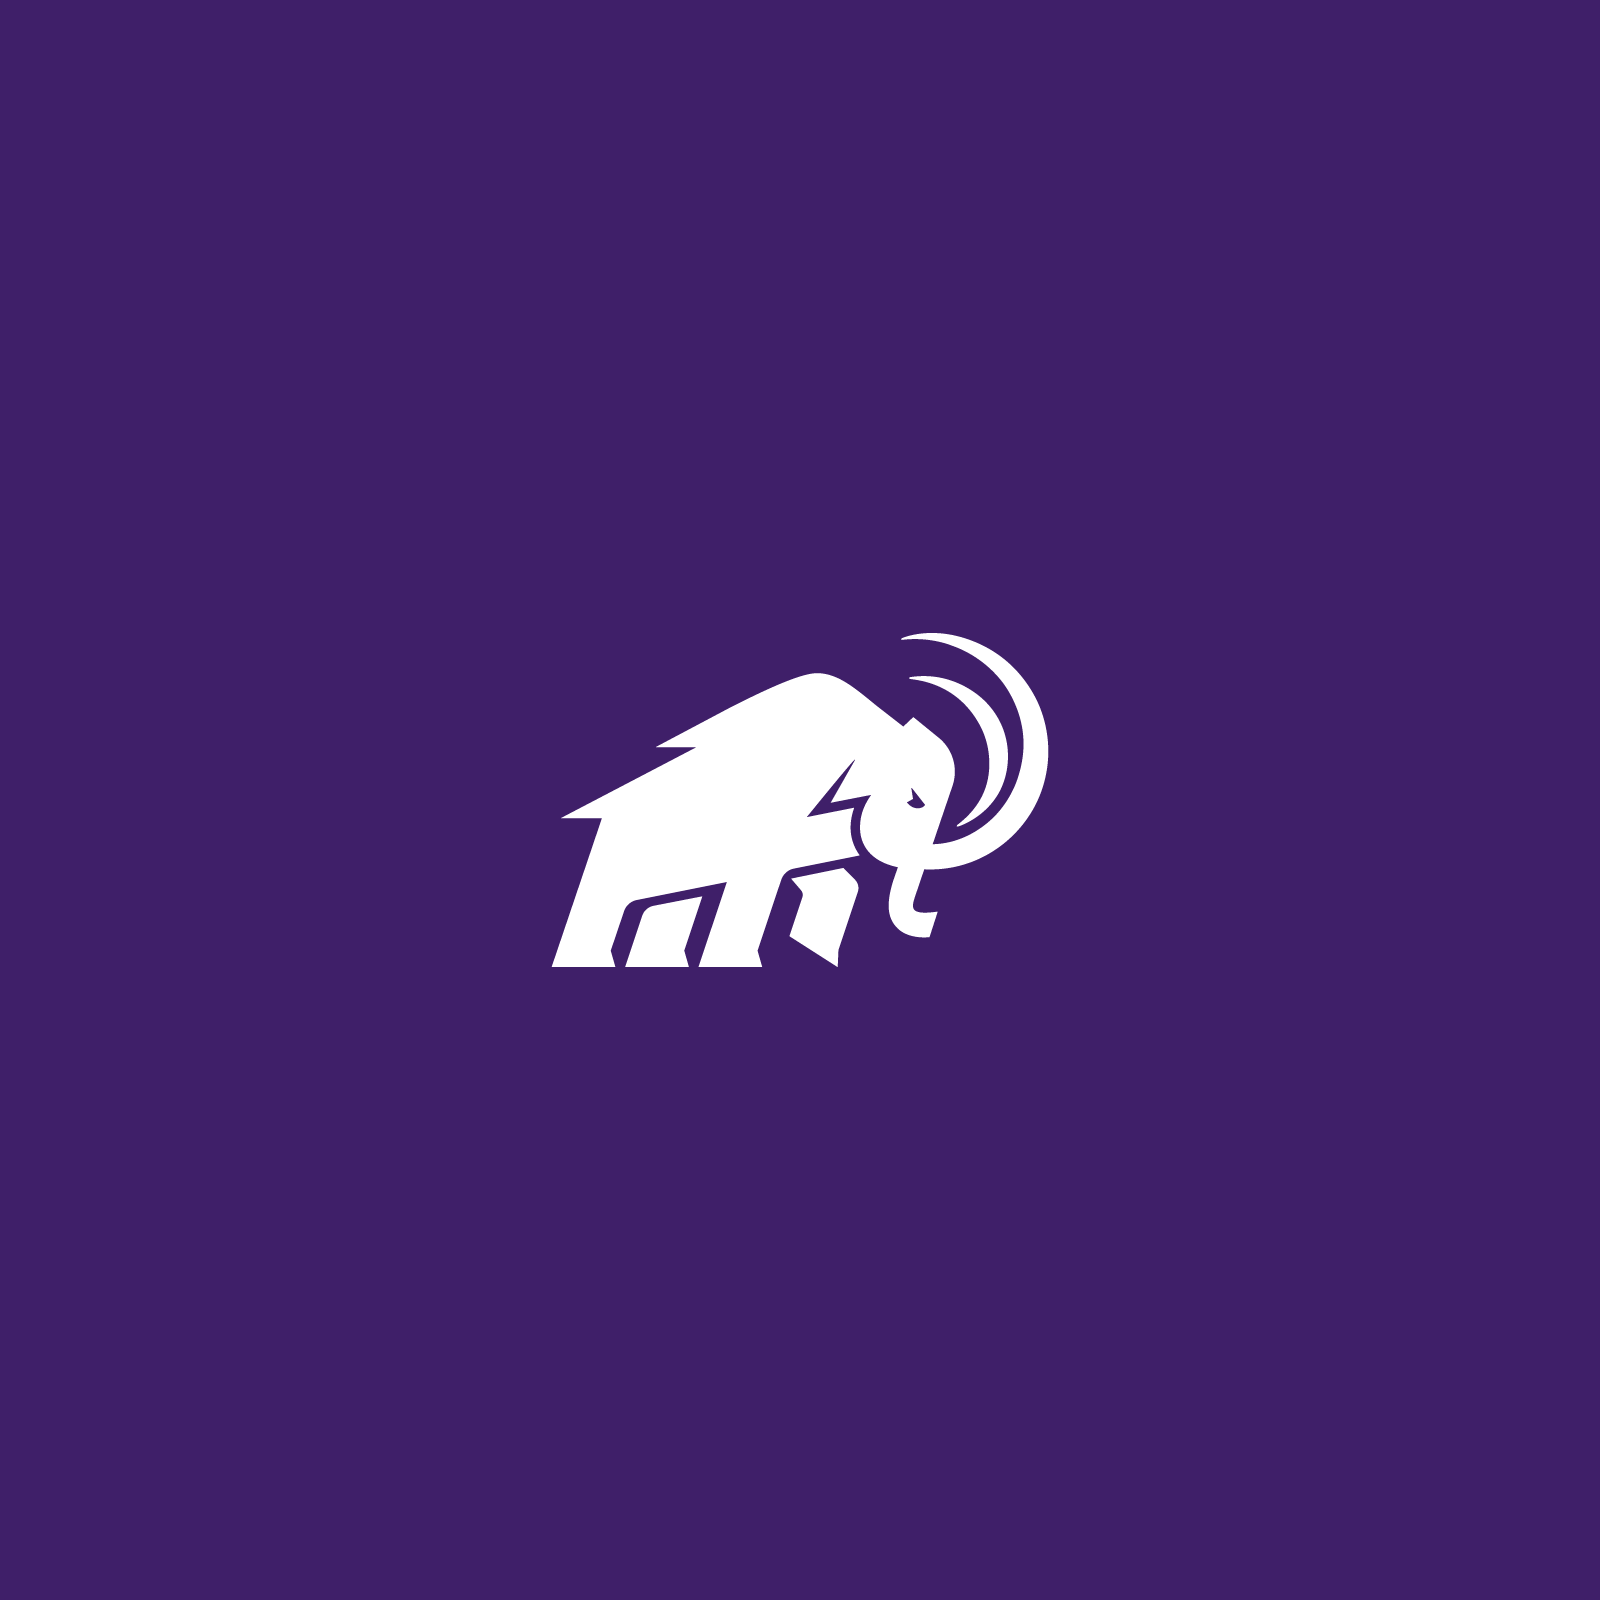 Amherst Mammoth in white on purple background